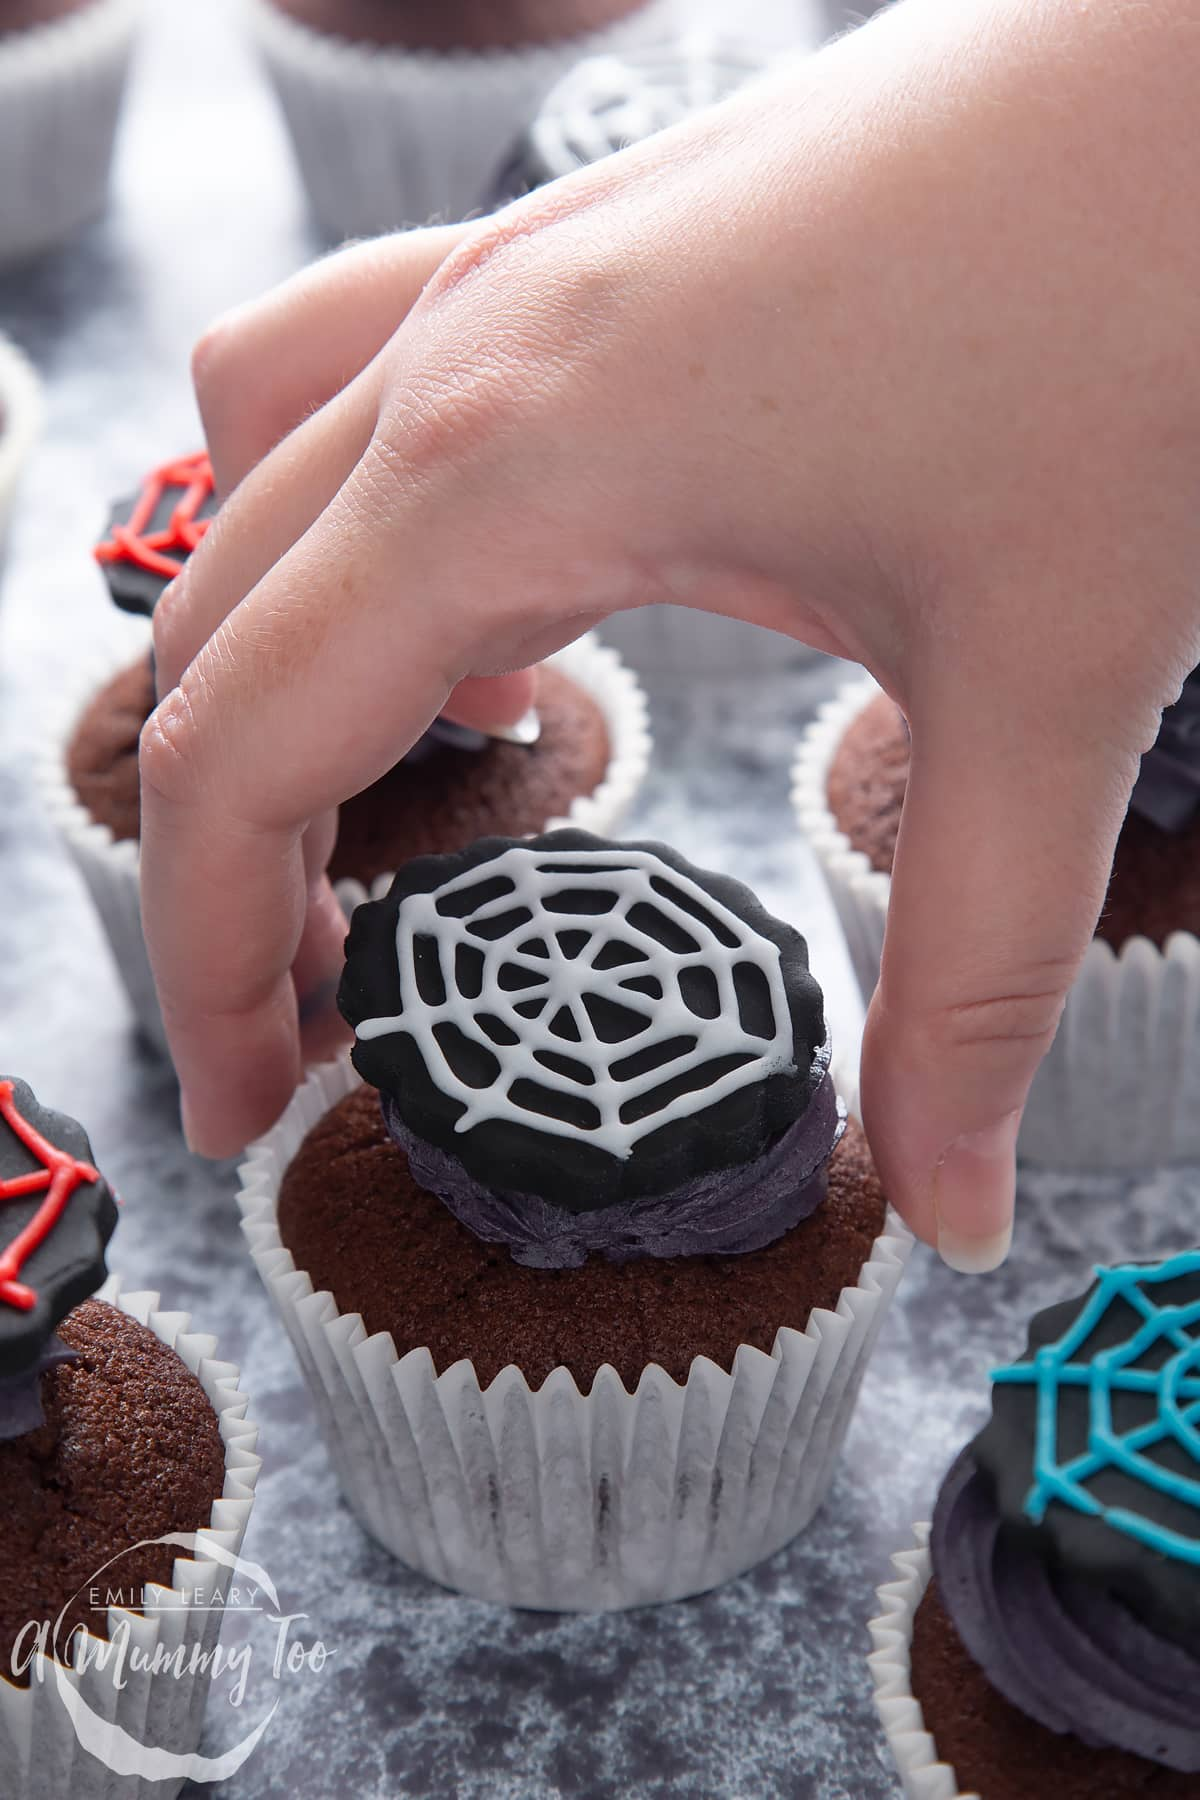 Spider web cupcakes arranged on a black surface. The chocolate sponge cupcakes are topped with purple vanilla buttercream and discs of black sugar paste decorated with spider web icing. A hand reaches to take one.